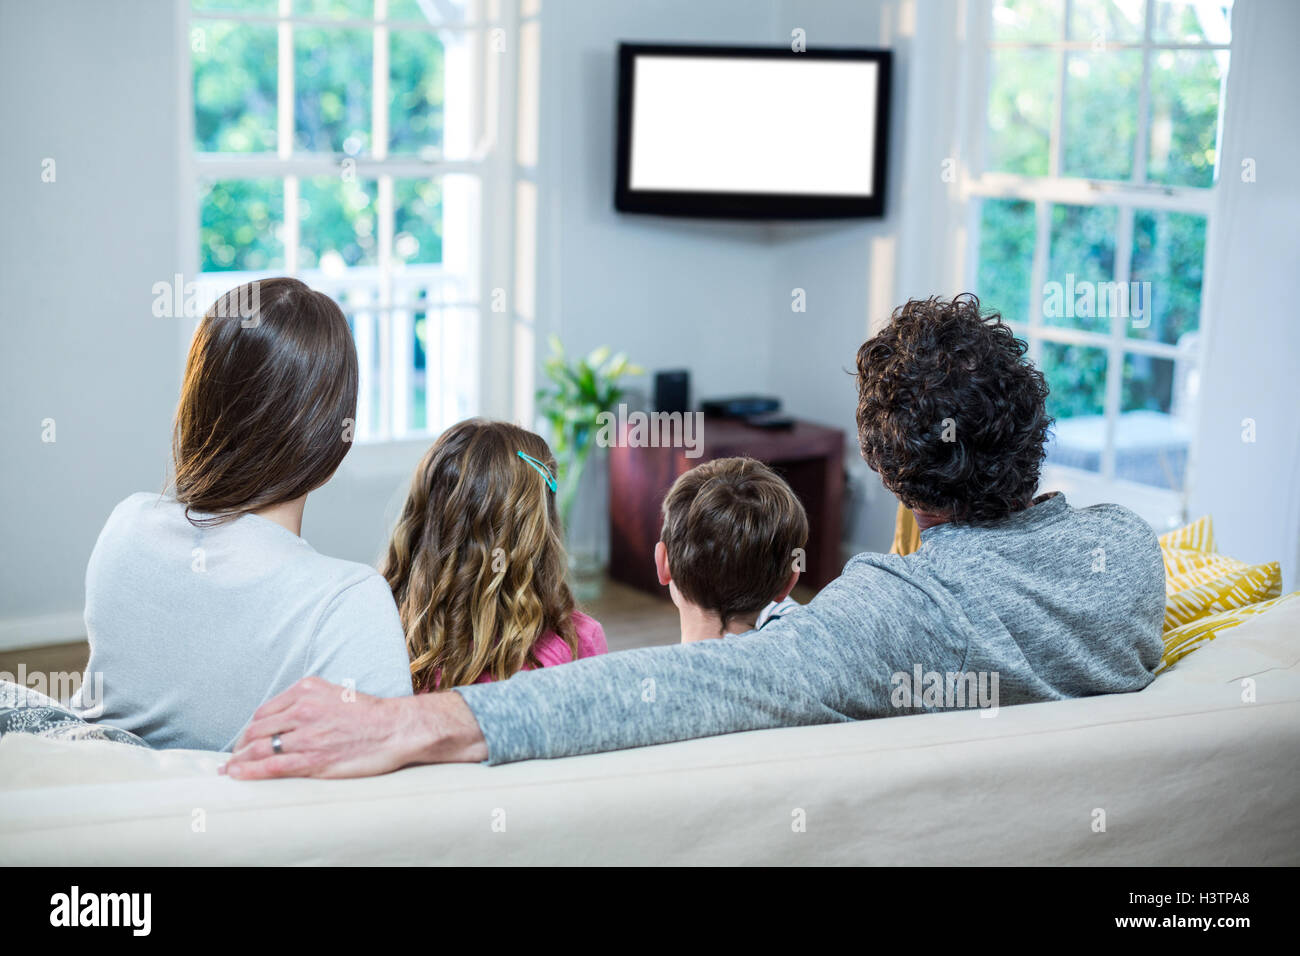 Family watching television while sitting on sofa - Stock Image